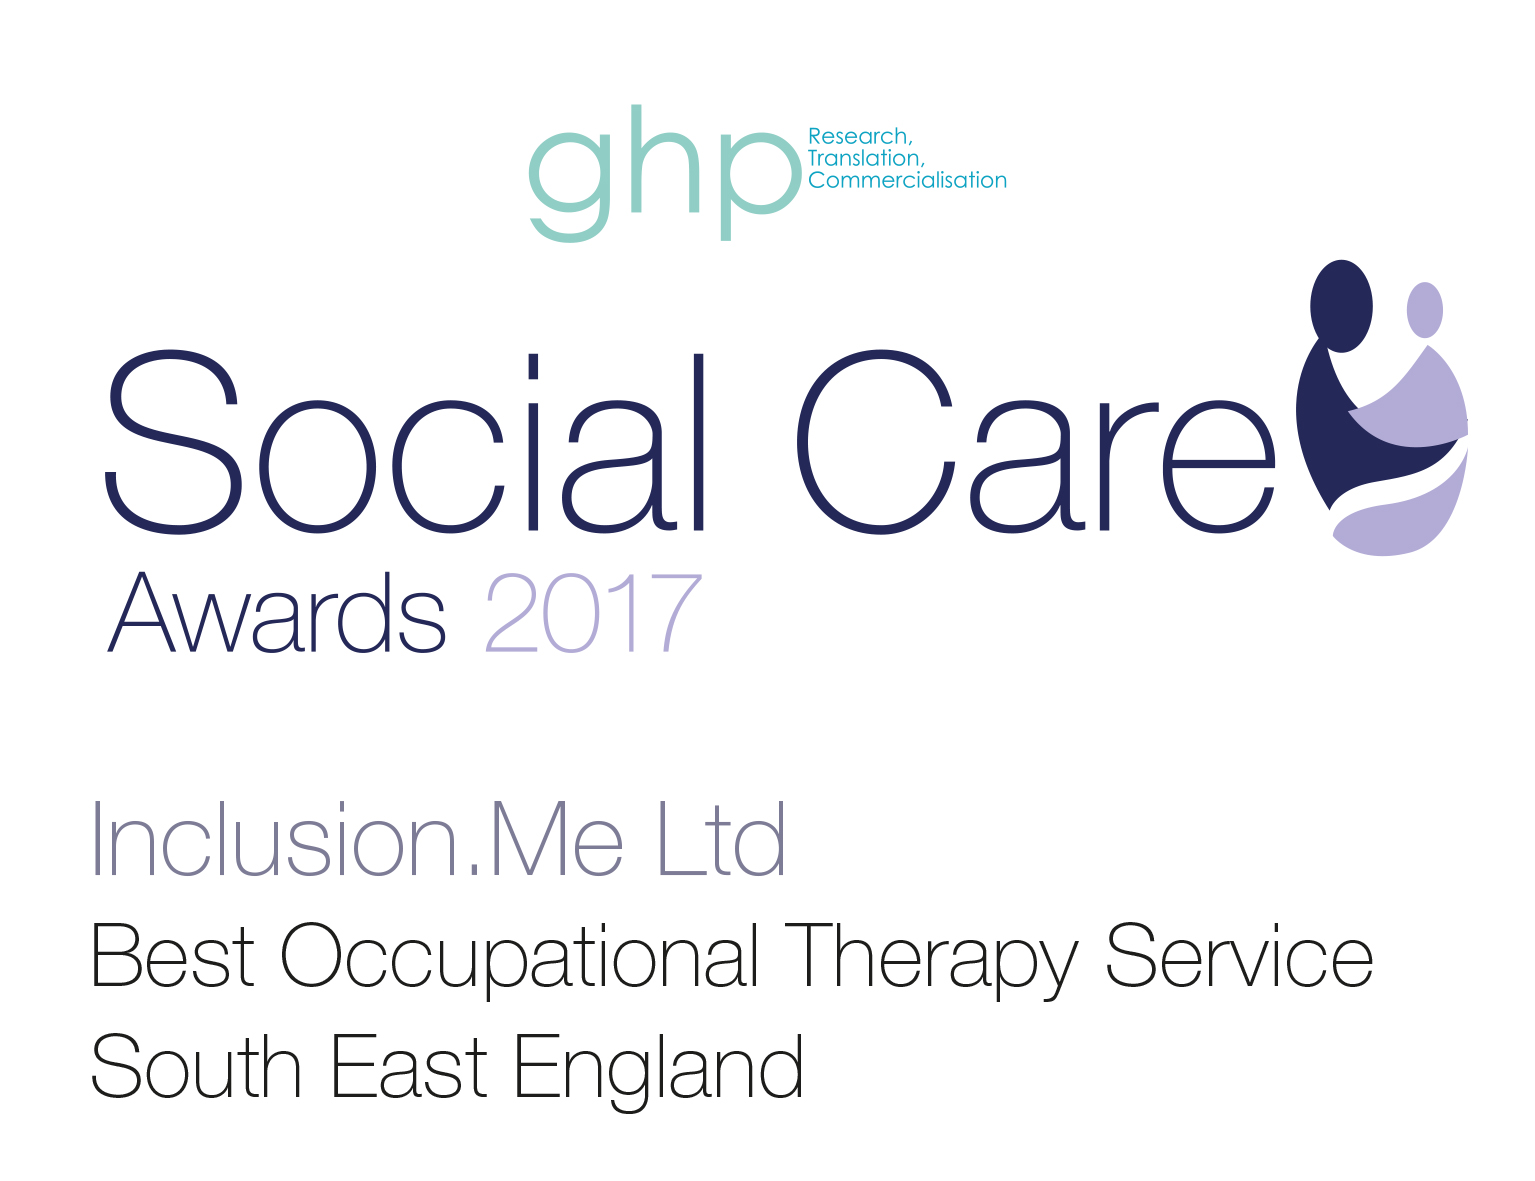 Social care awards 2017